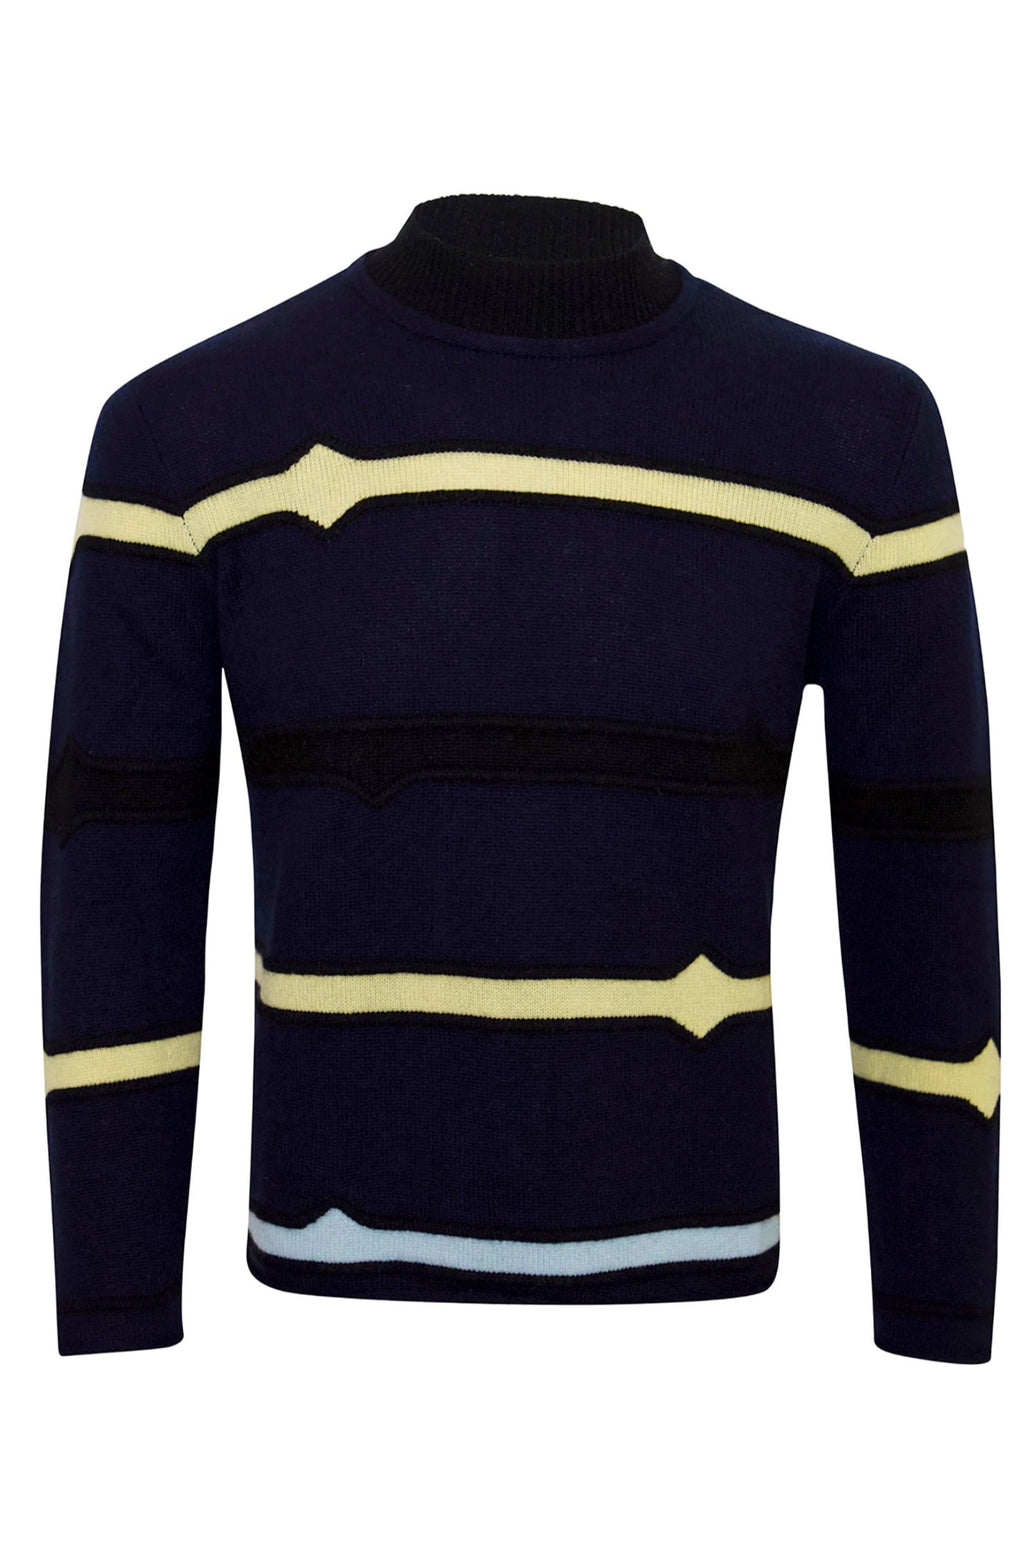 Adrian Unisex High Neck Striped Jumper